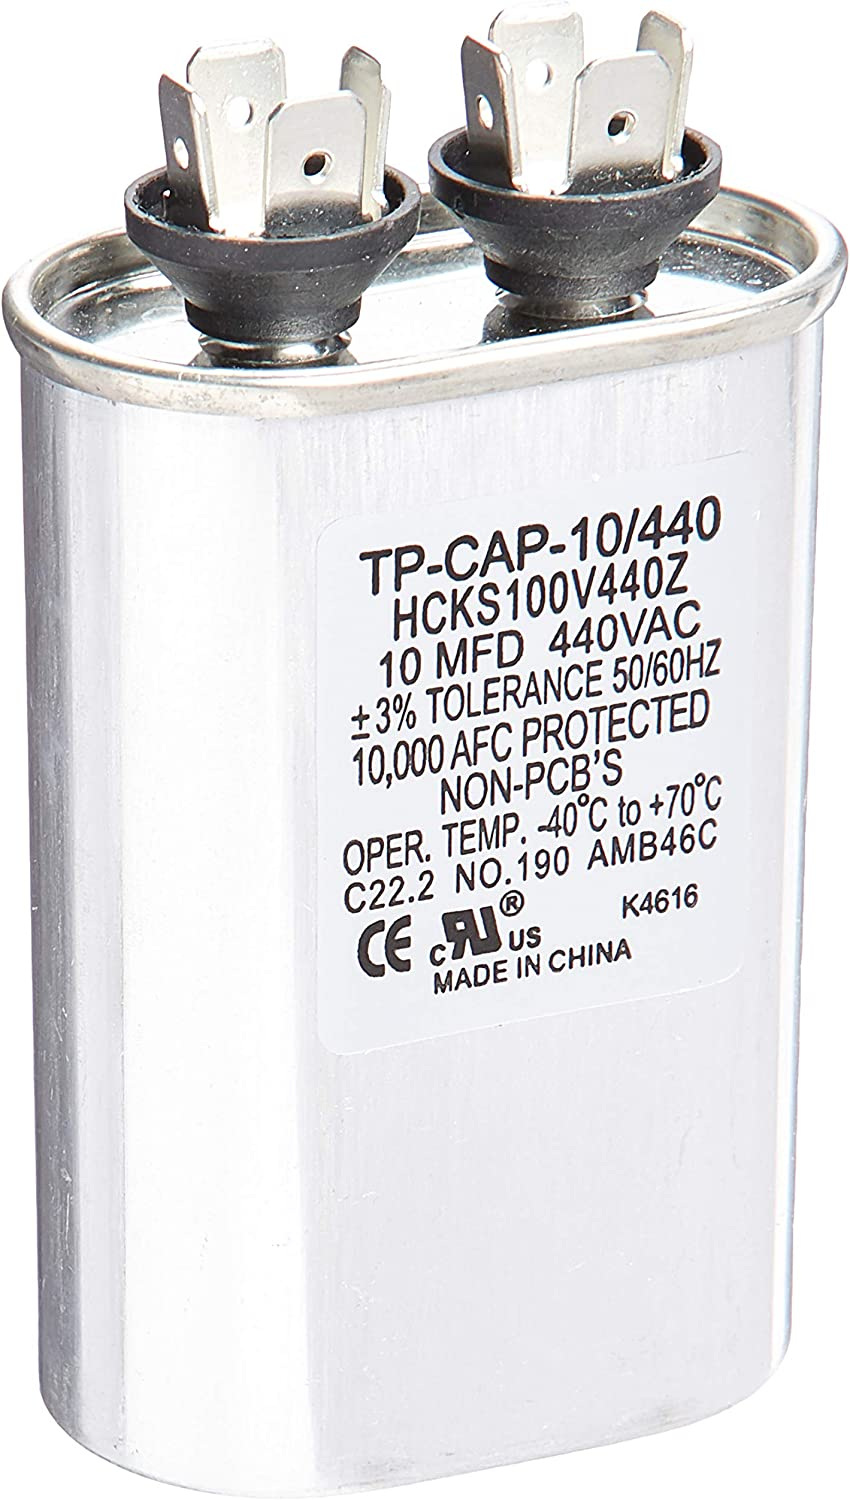 Carrier Max 85% OFF TP-CAP-10 Limited price 440 Capacitor Run